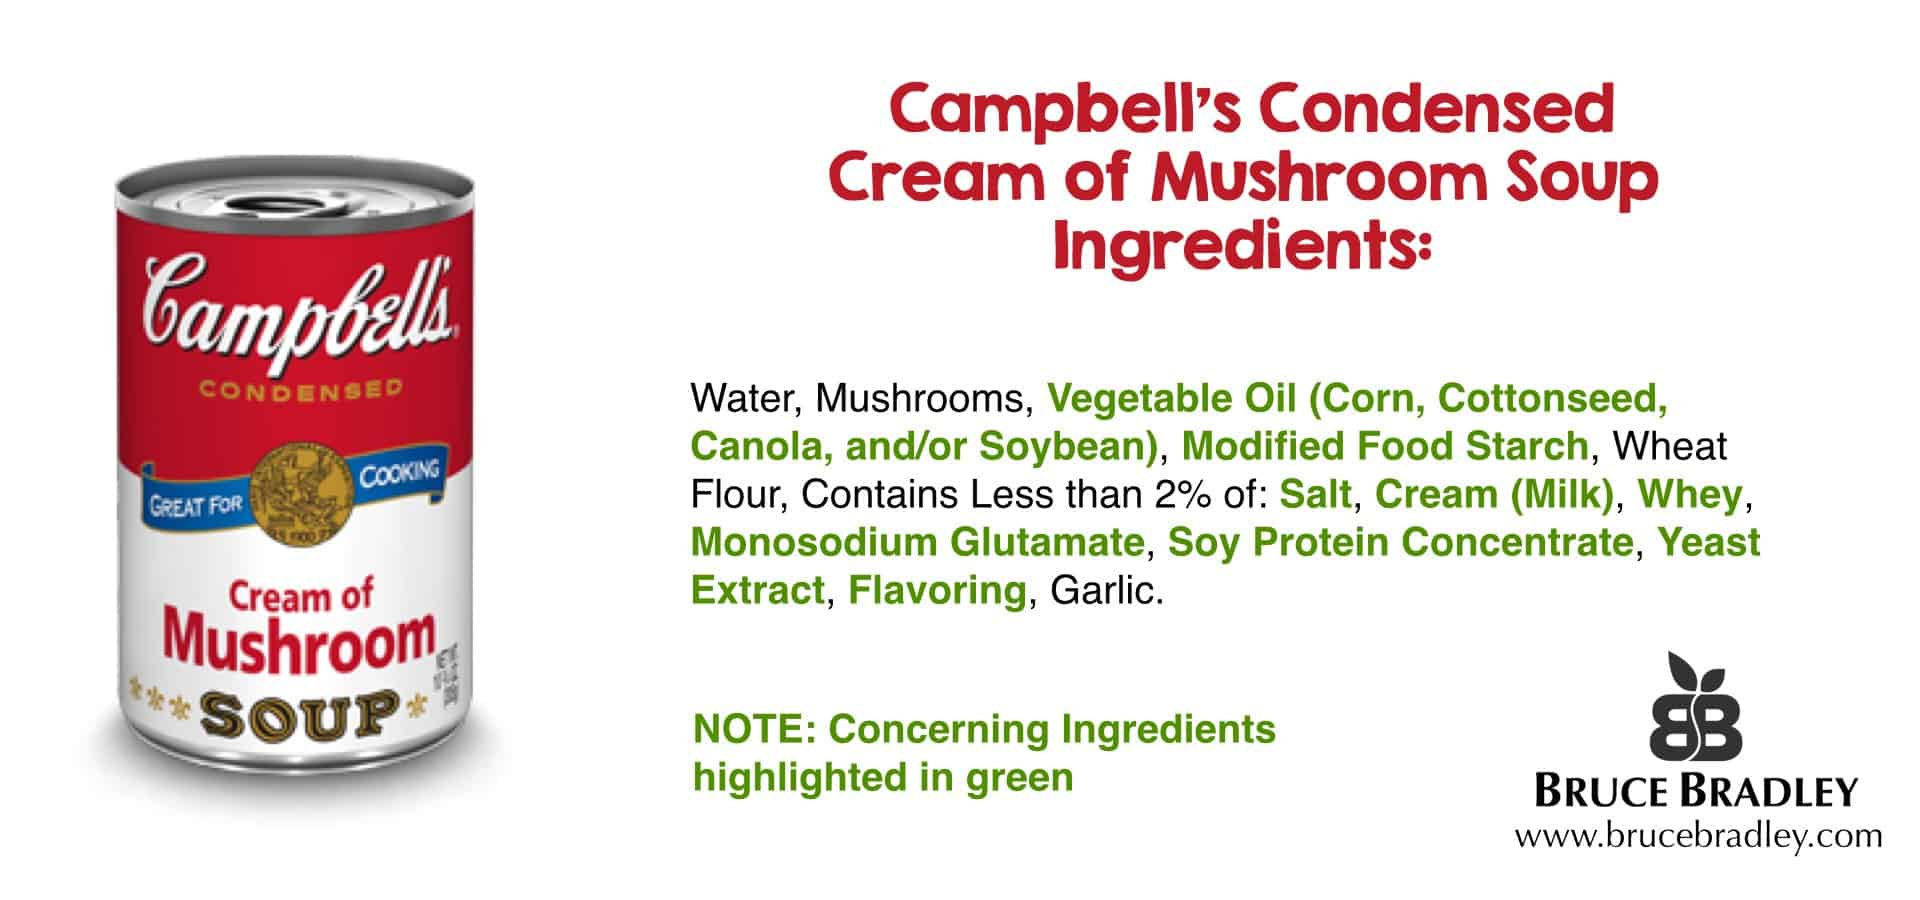 There are many concerning ingredients in condensed mushroom soup!